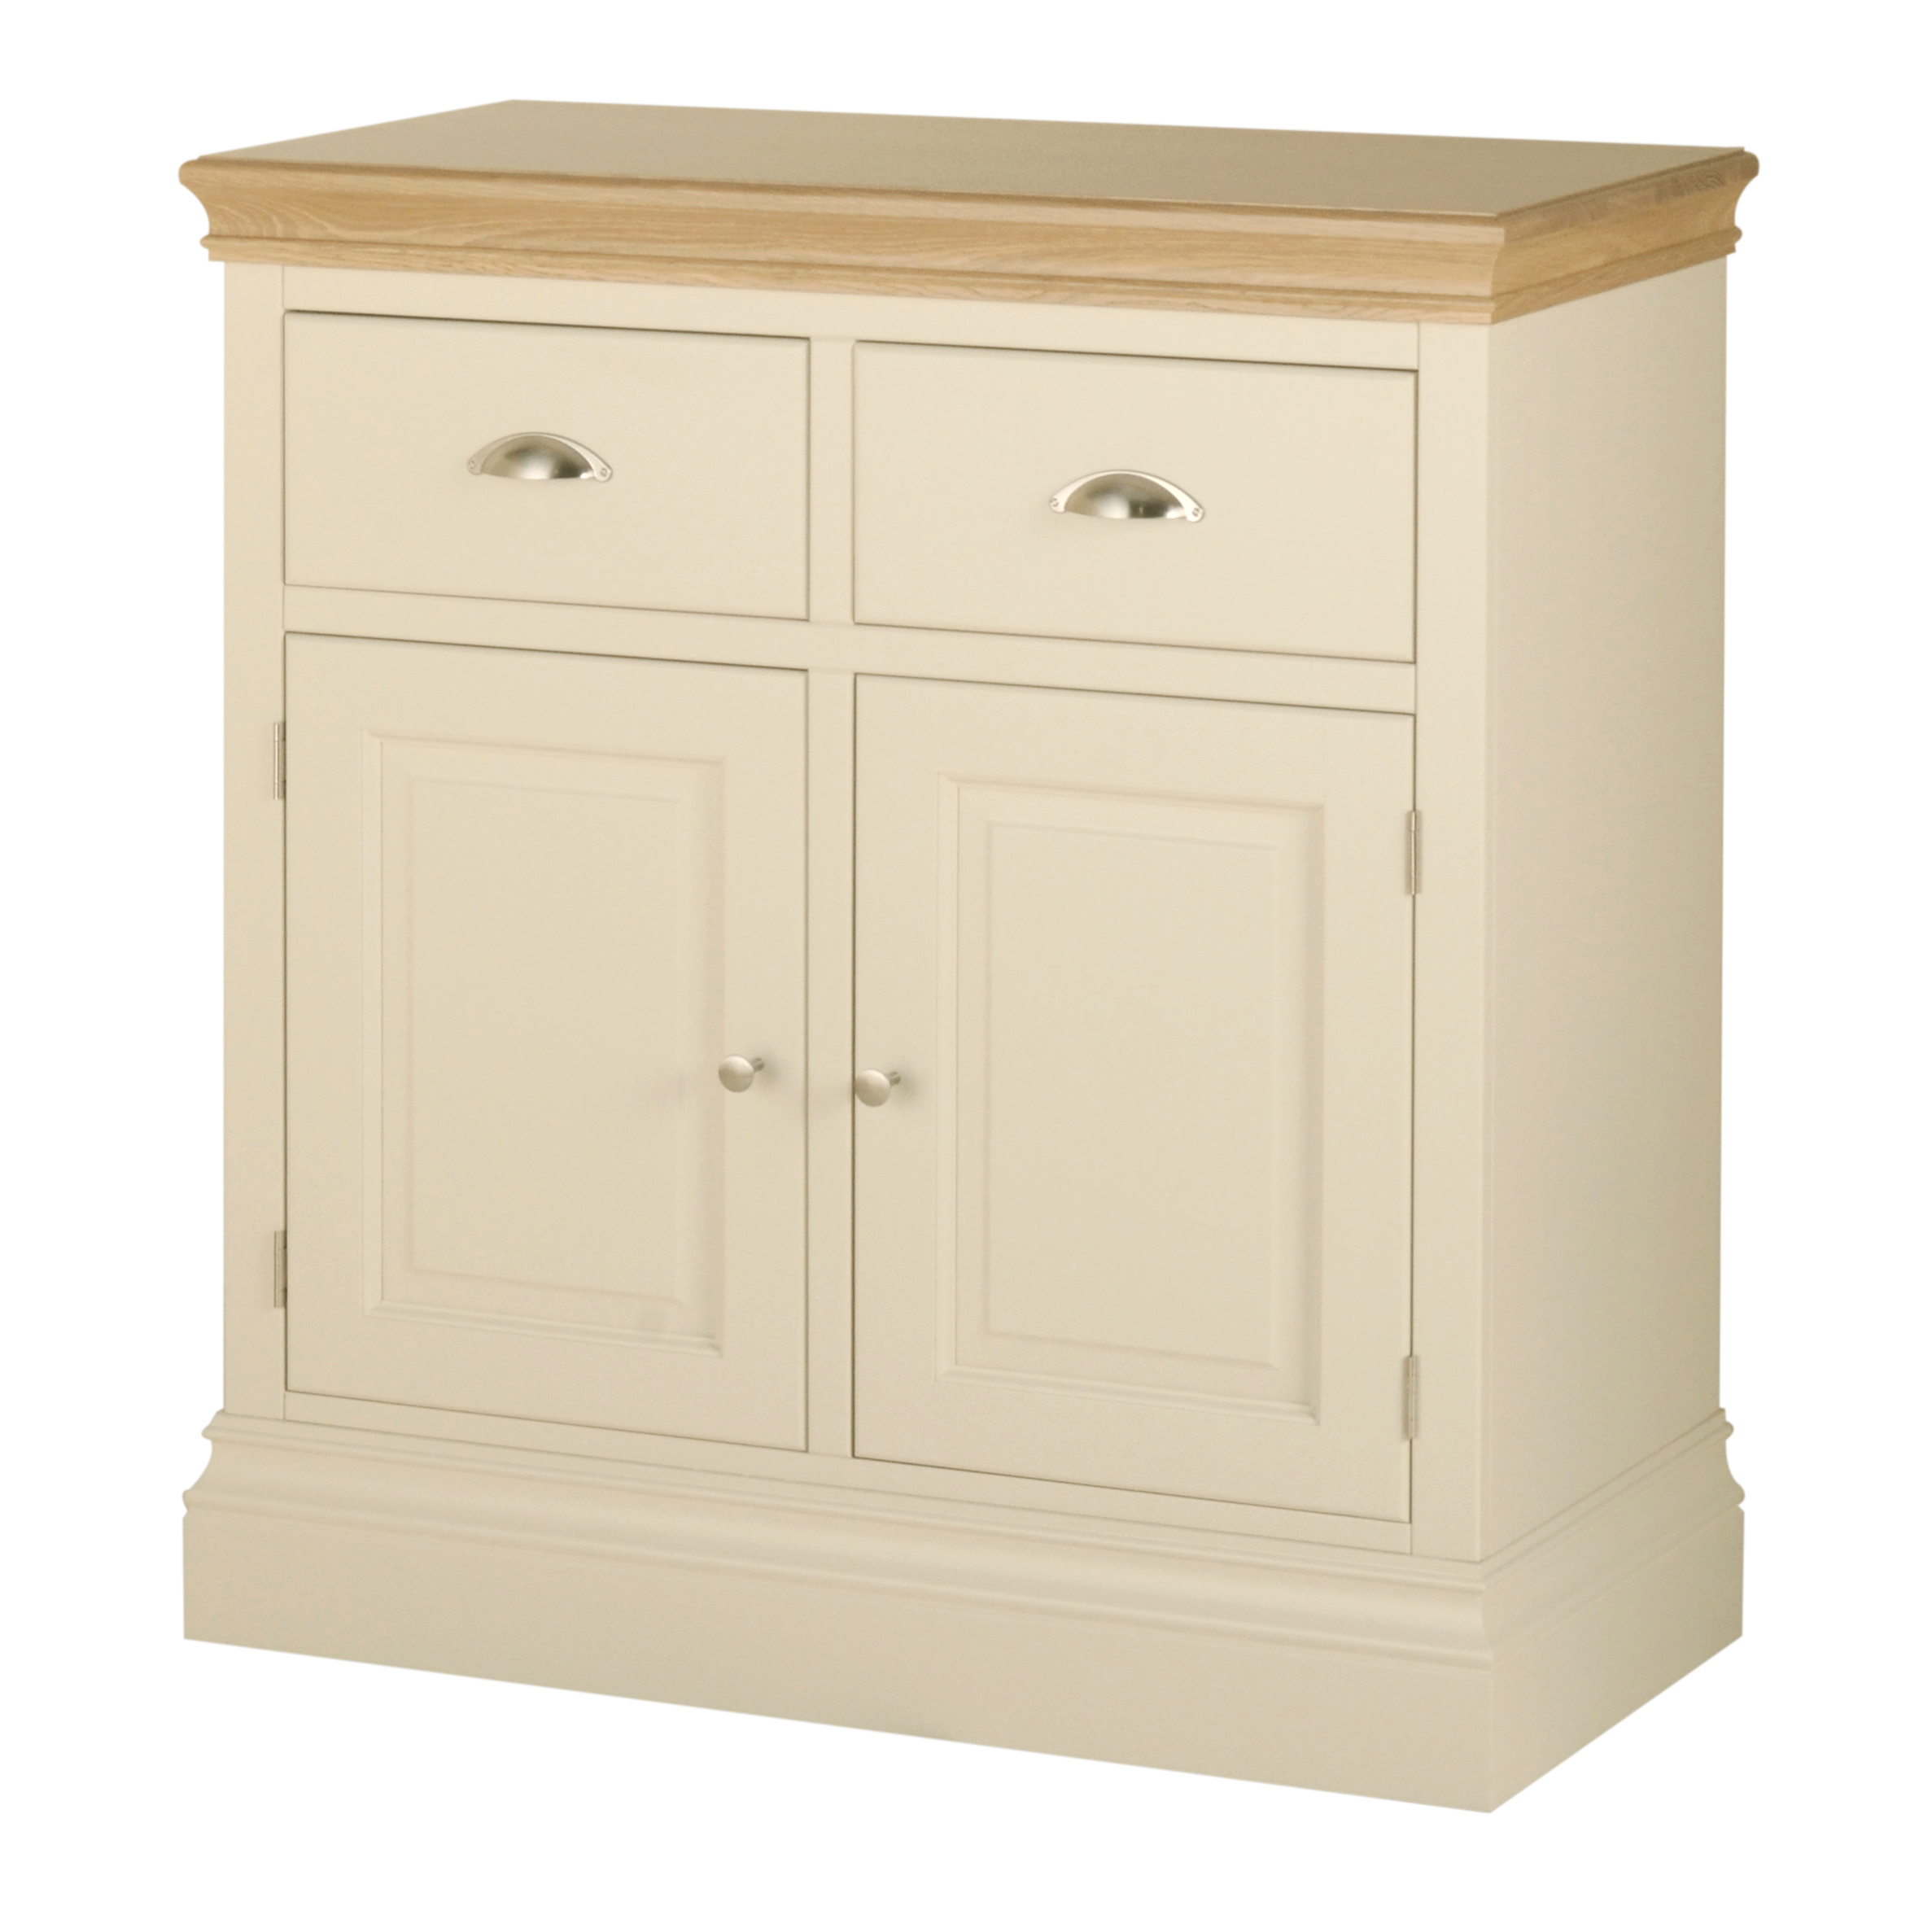 Current 2 Drawer Sideboards Regarding Buttermere Painted 2 Drawer Sideboard – Cumbria Oak (Gallery 3 of 20)